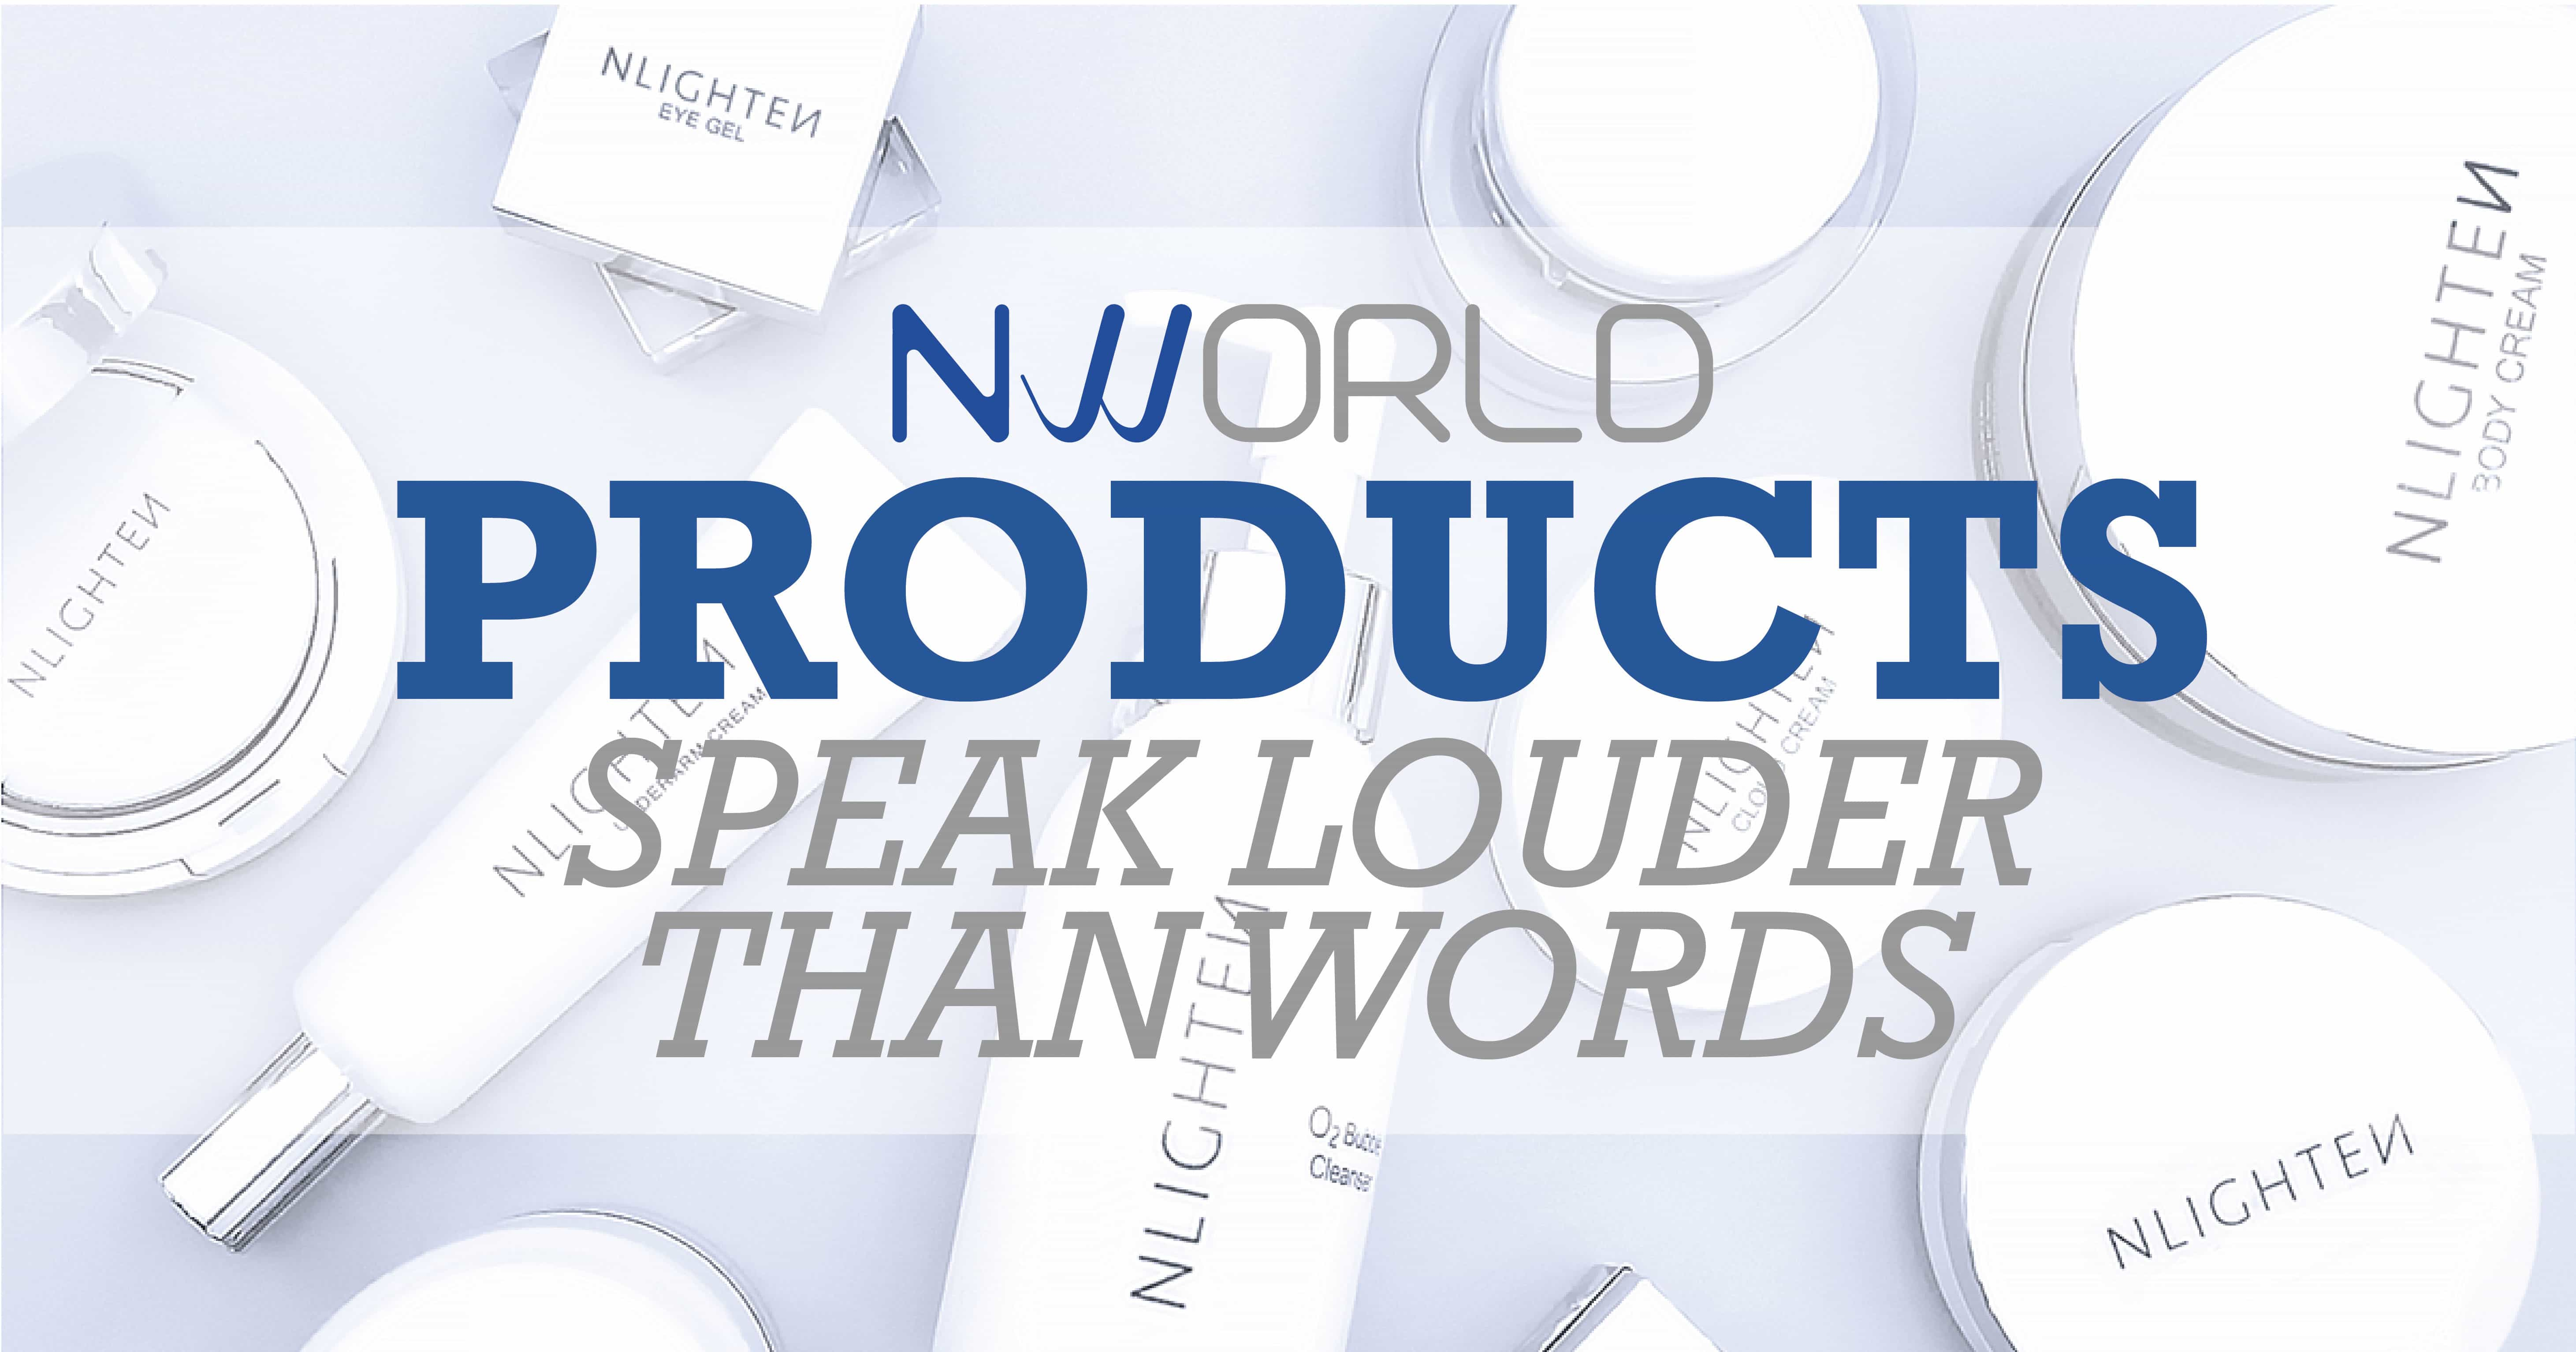 NWORLD Products Speak Louder than Words